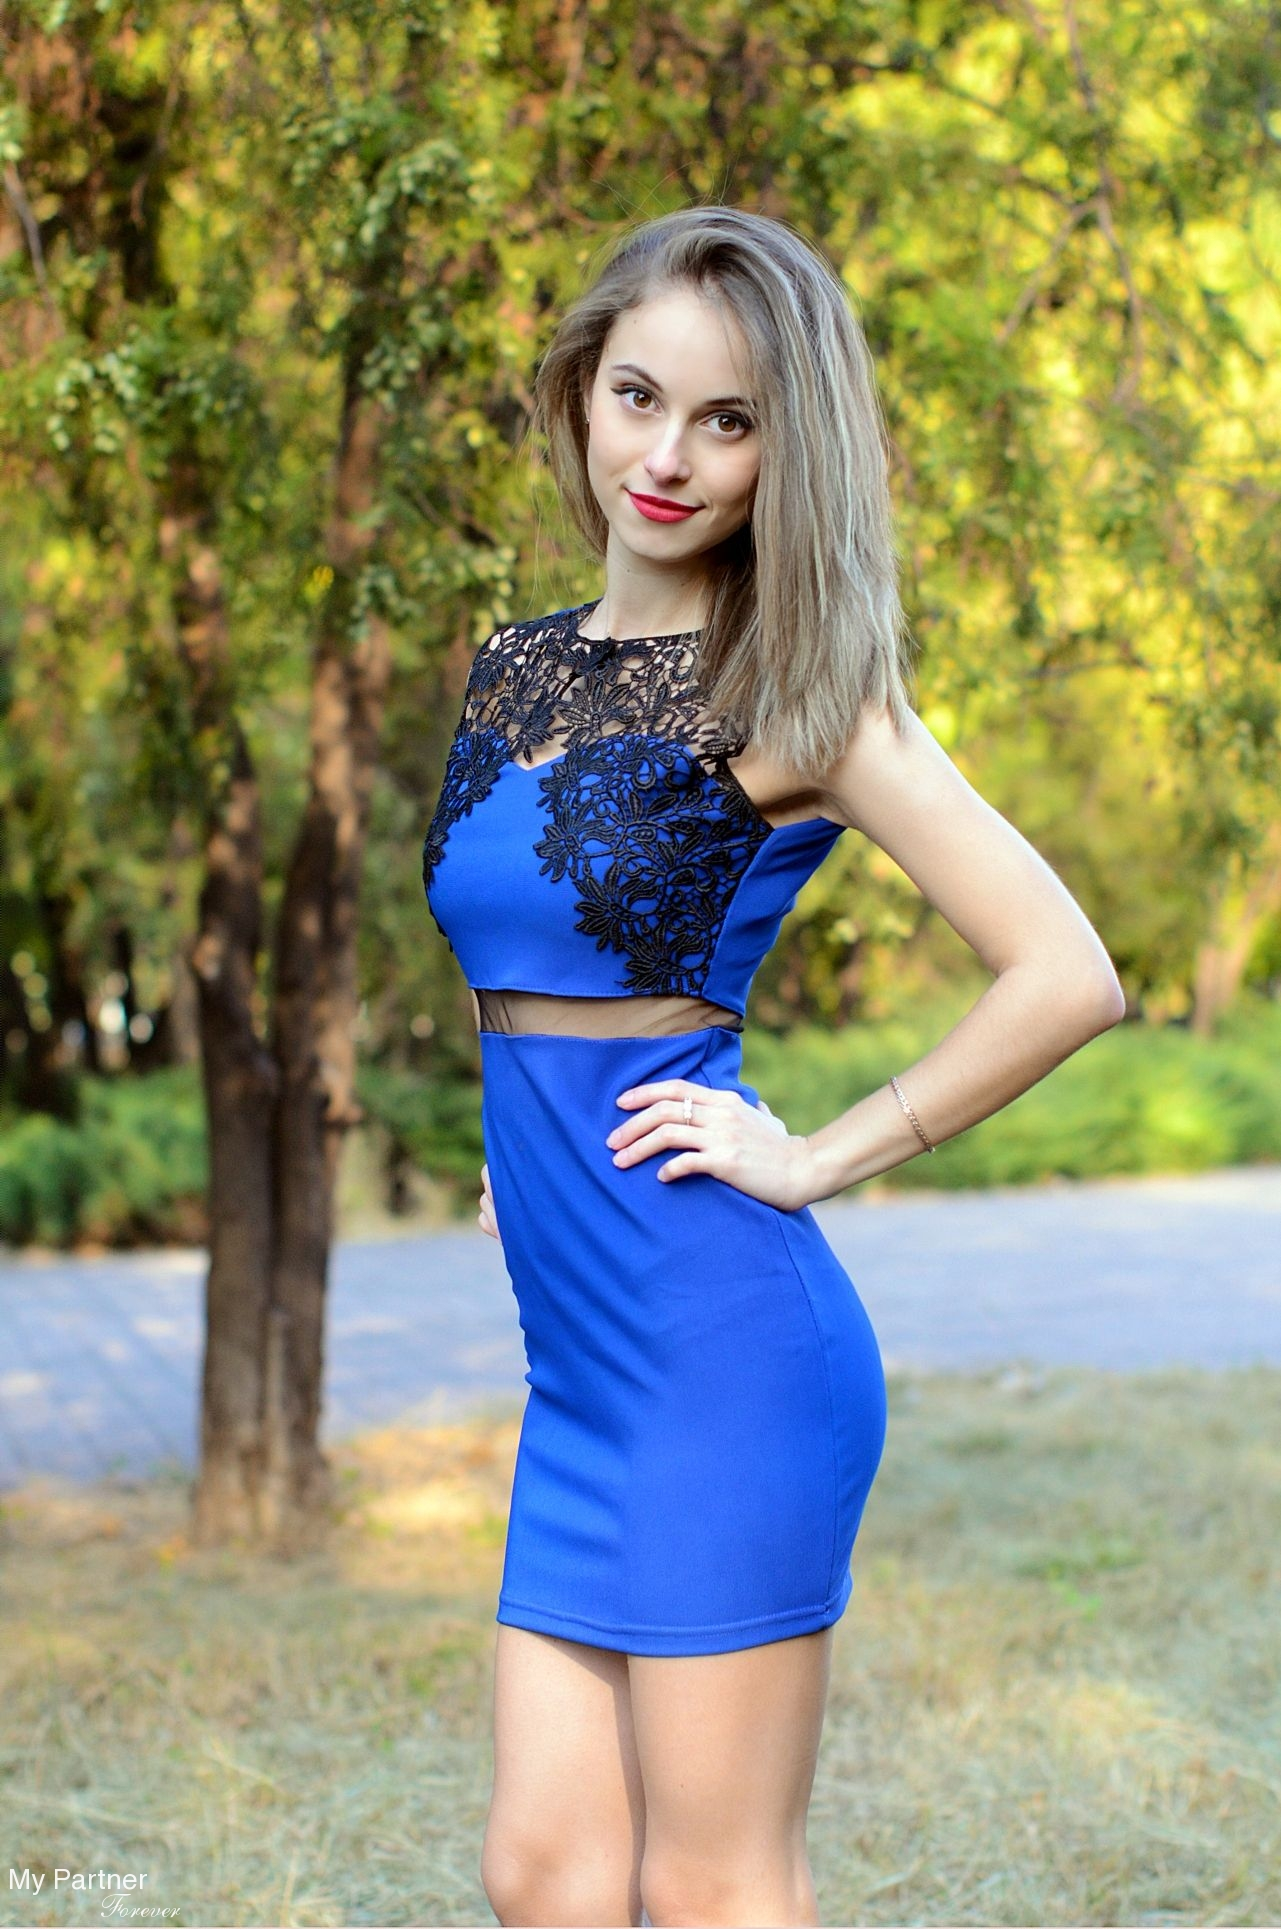 Dating ukraine